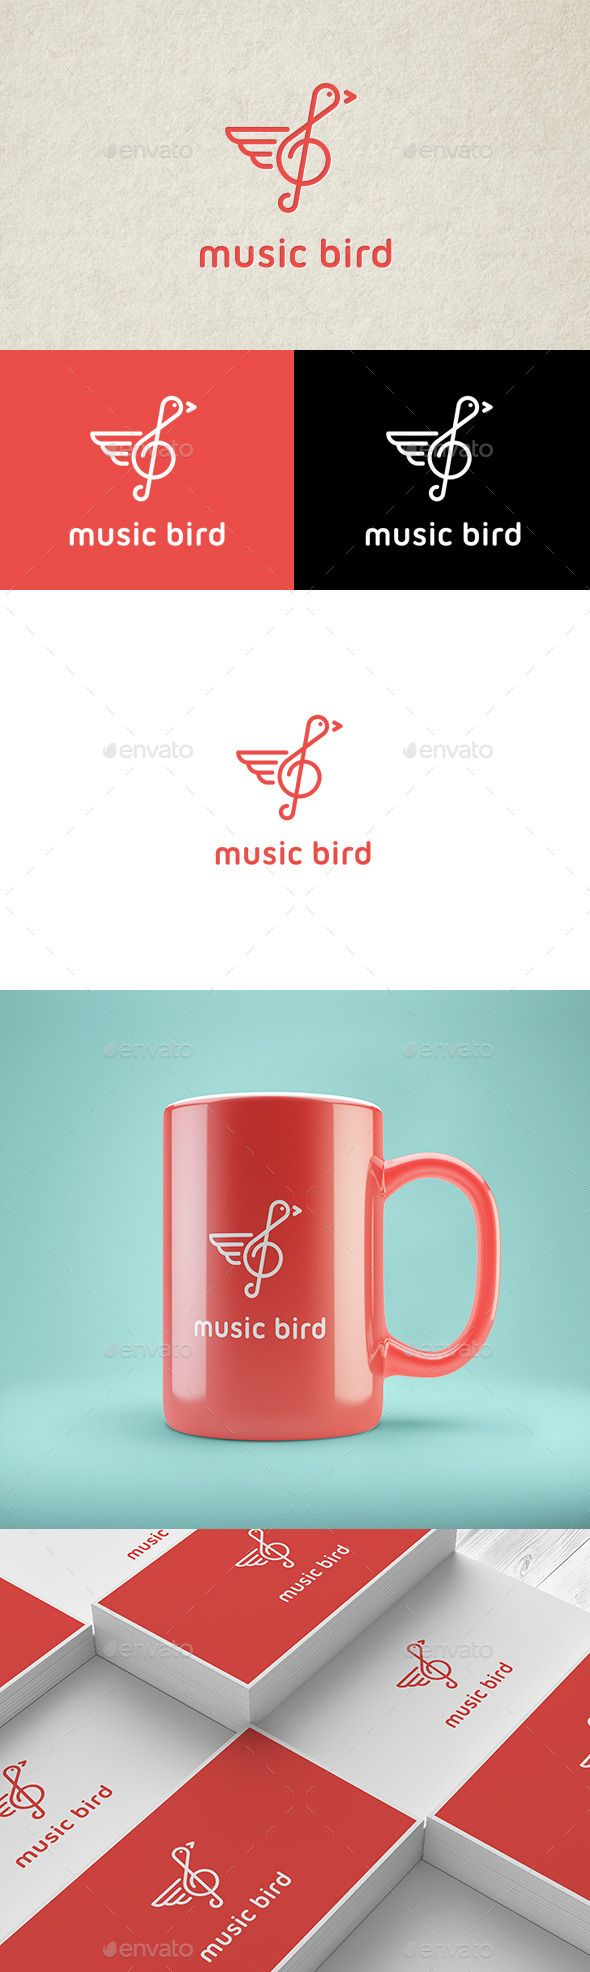 Music Bird  Logo Design Template Vector #logotype Download it here: http://graphicriver.net/item/music-bird-logo/12964753?s_rank=1106?ref=nexion